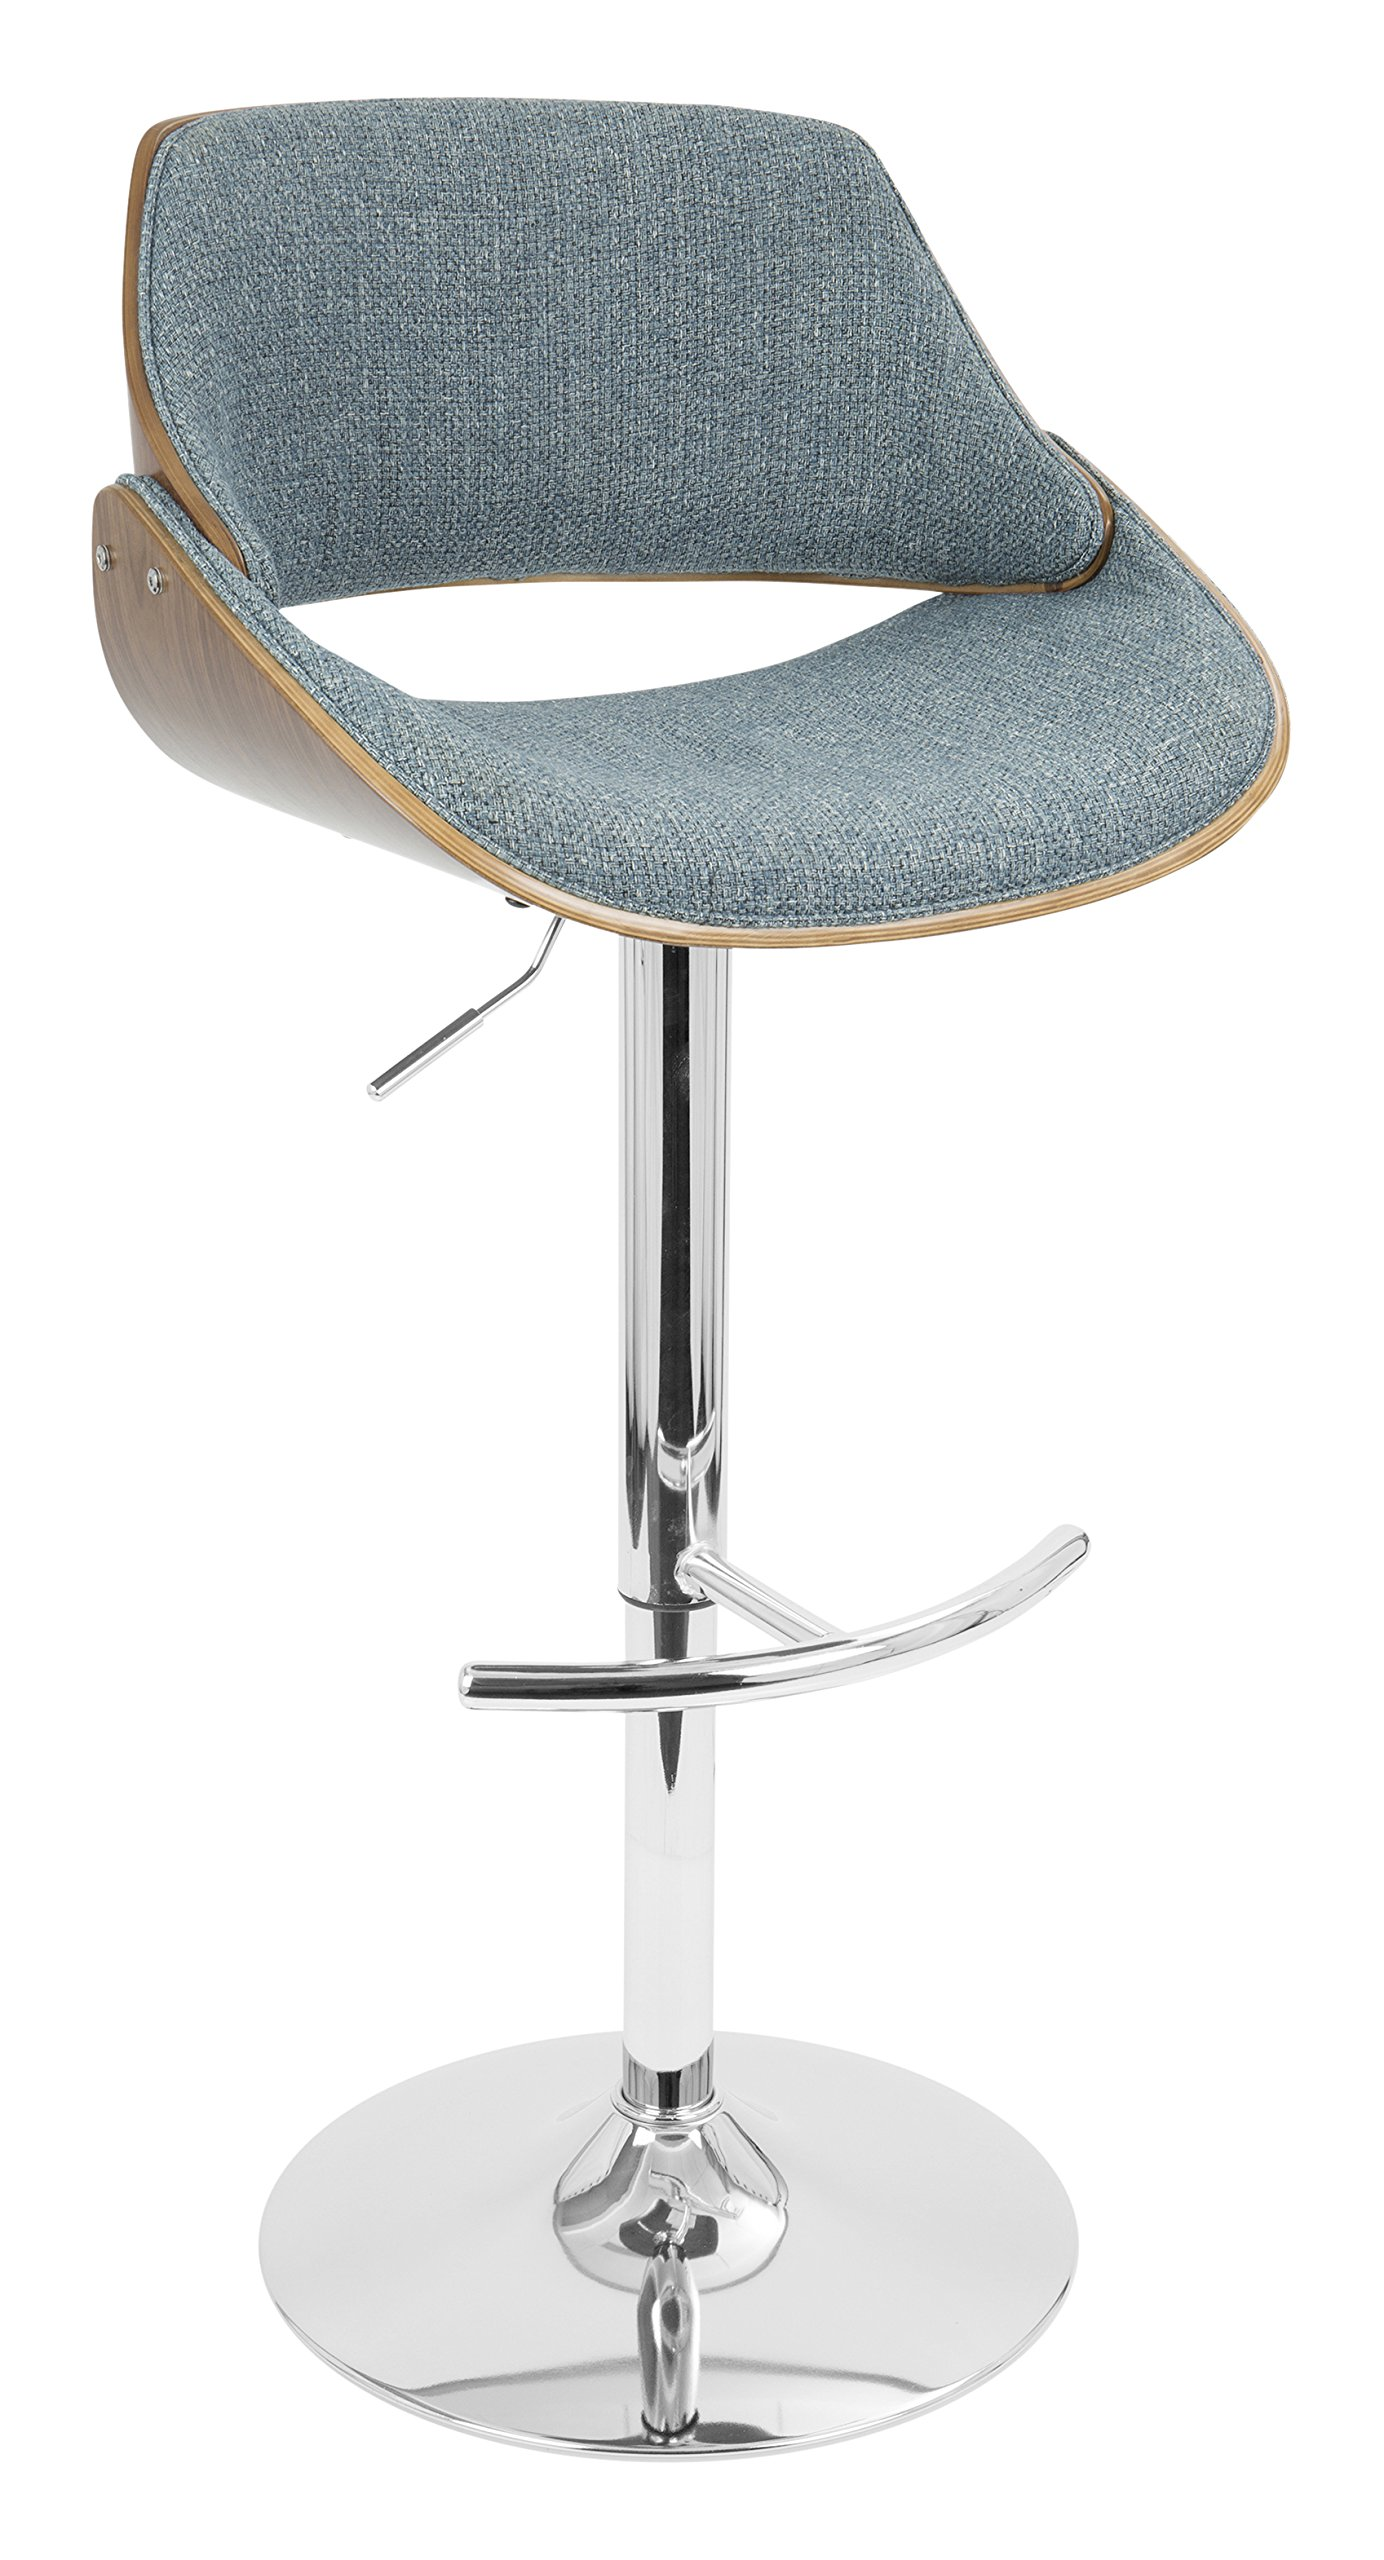 WOYBR BS-FBZZ WL+BU Wood, Chrome, Polyester Fabric, Foam, Fabrizzi Barstool